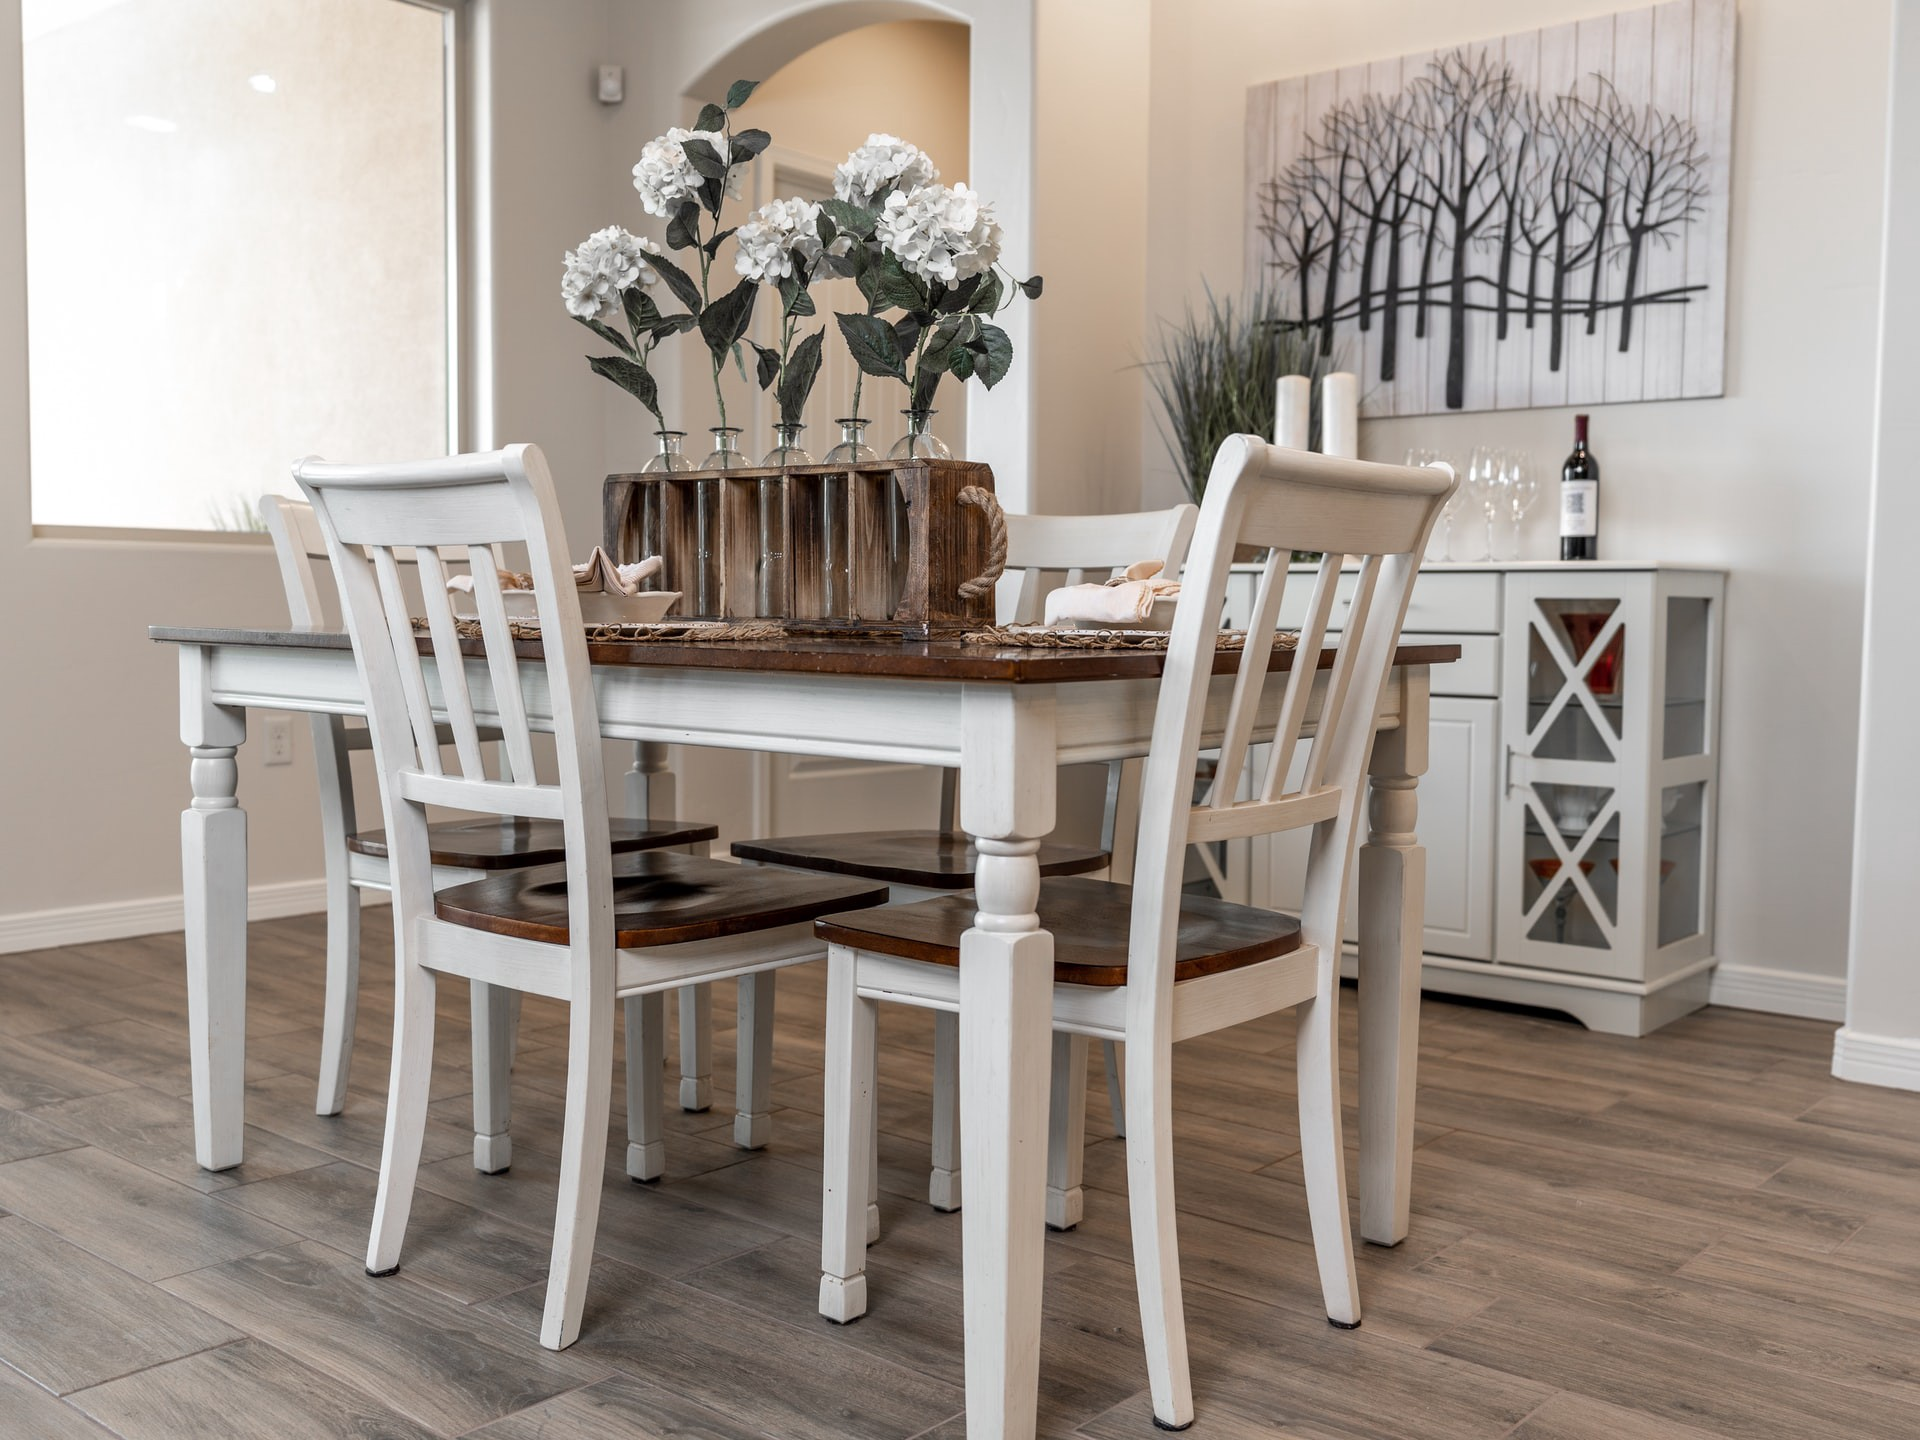 White table and chair set in dining room